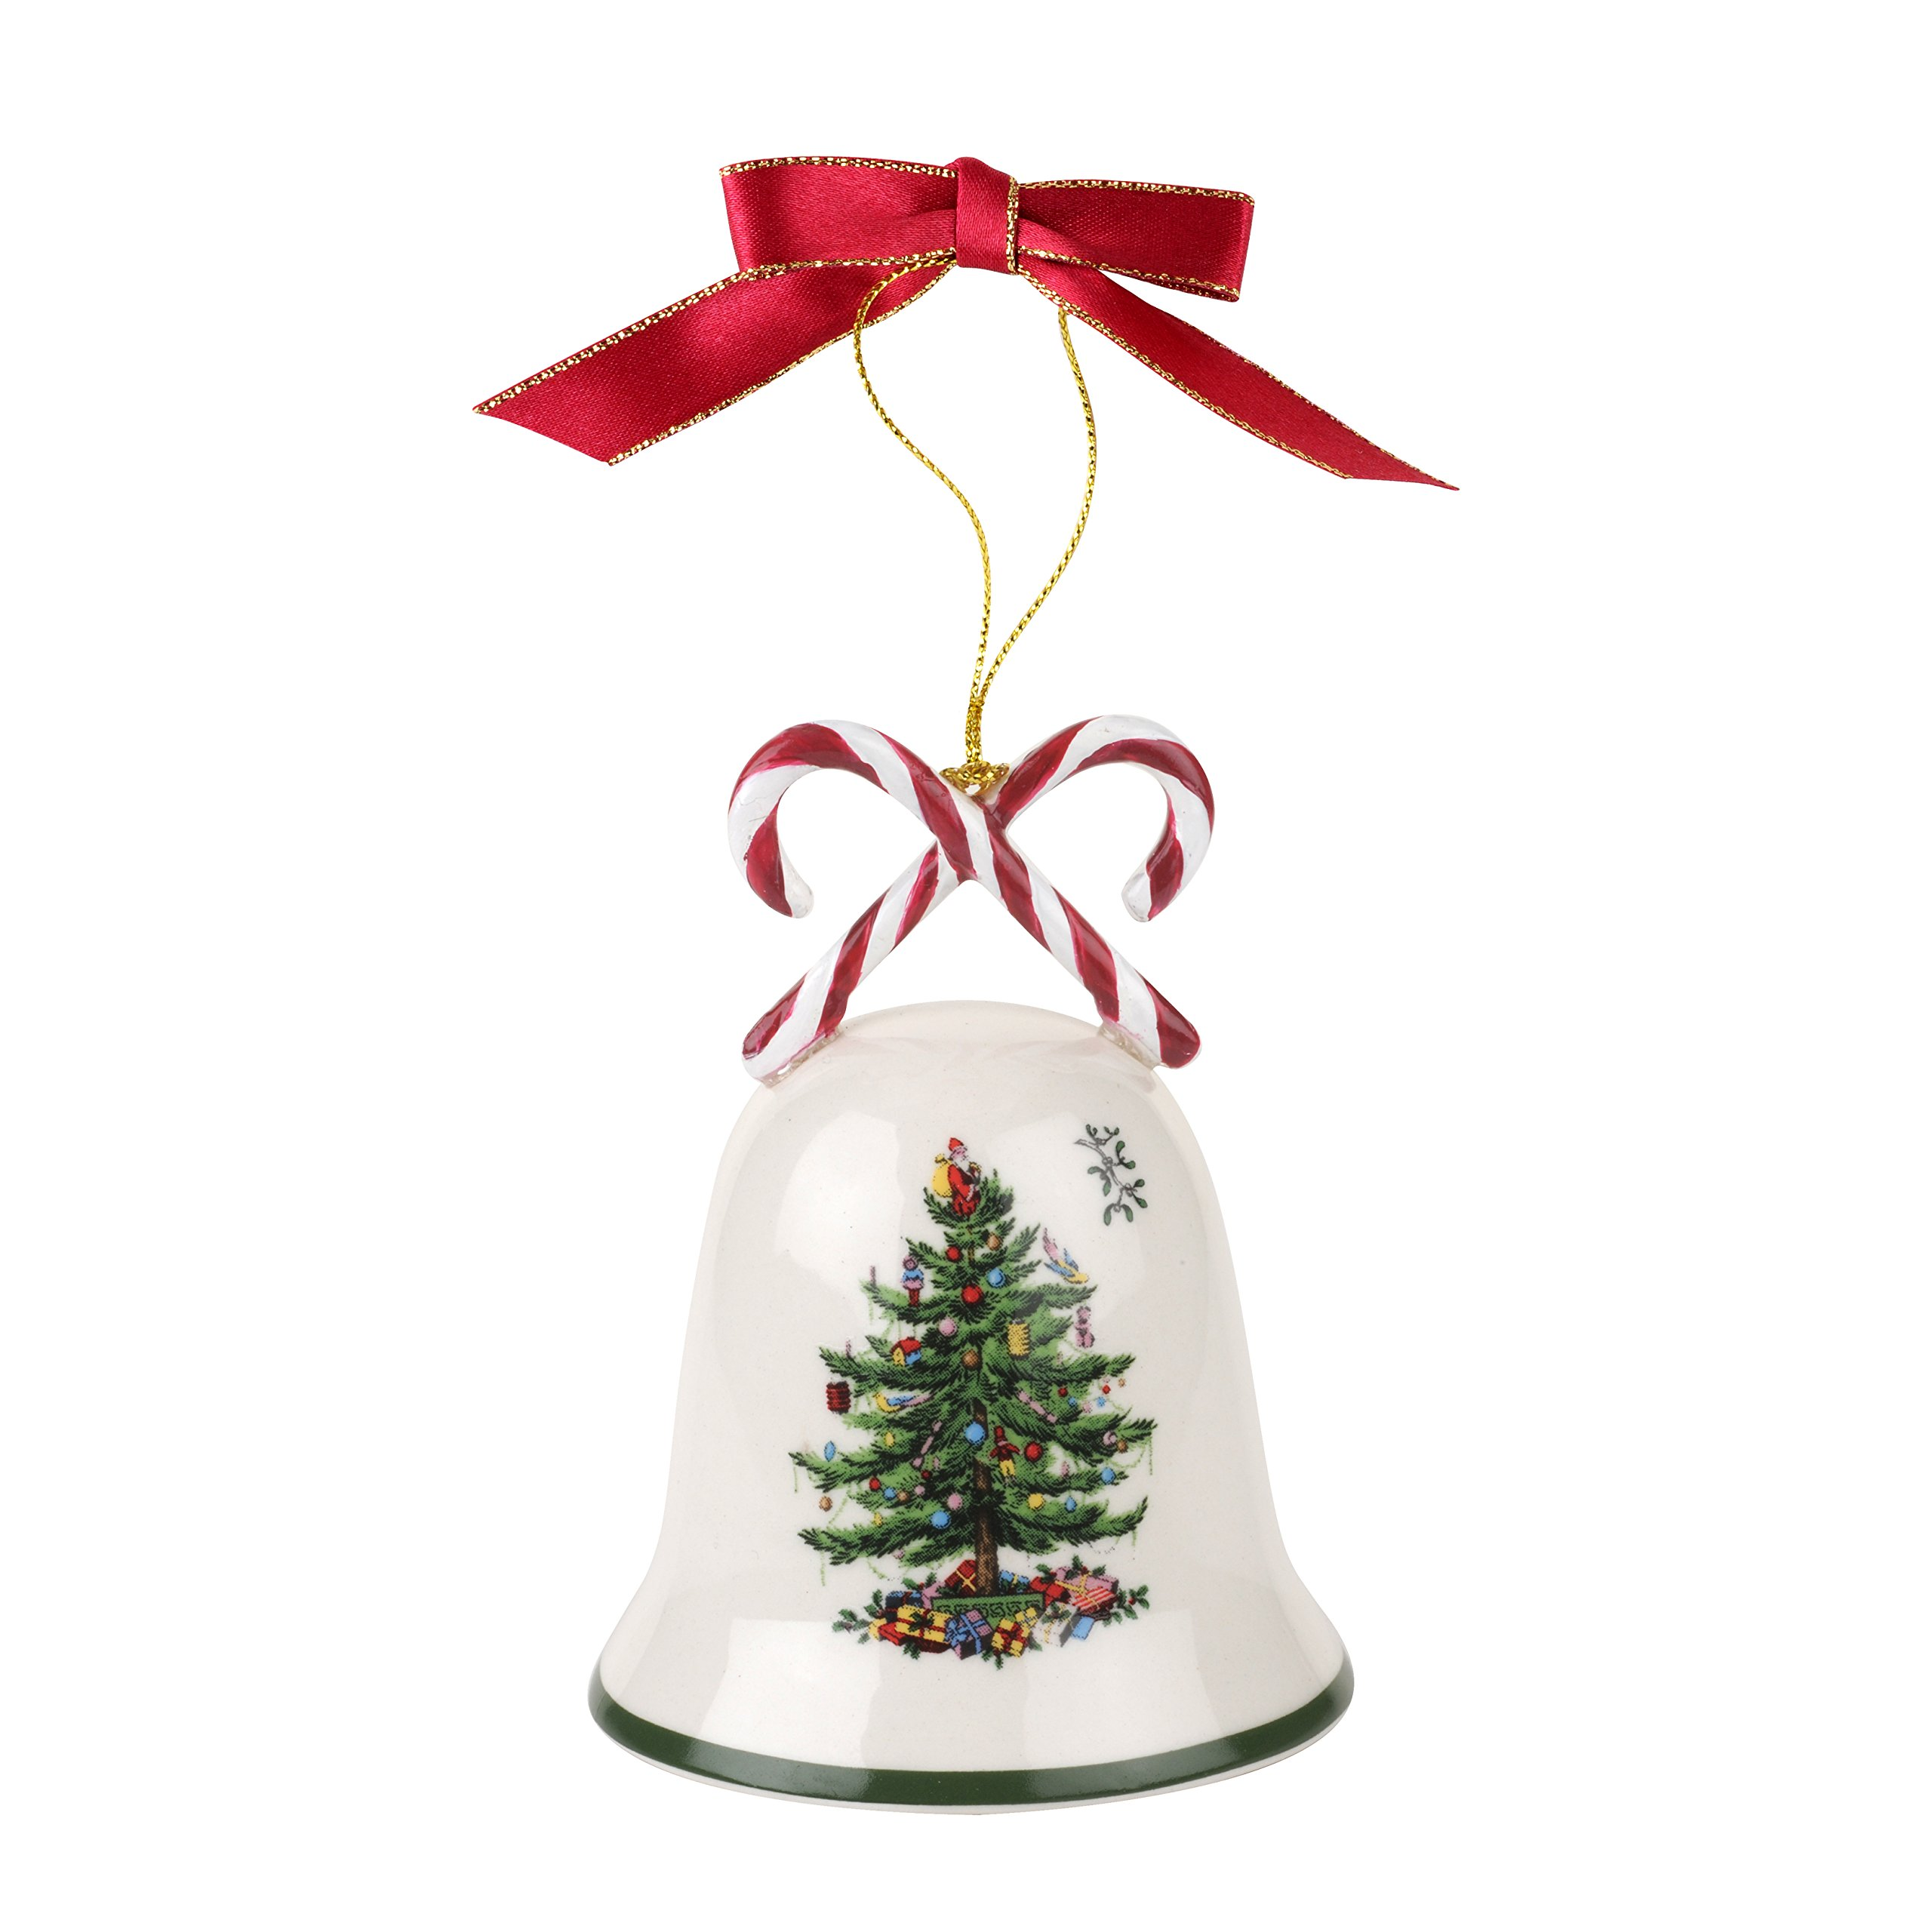 Spode Christmas Tree Ornament, Candy Cane Bell